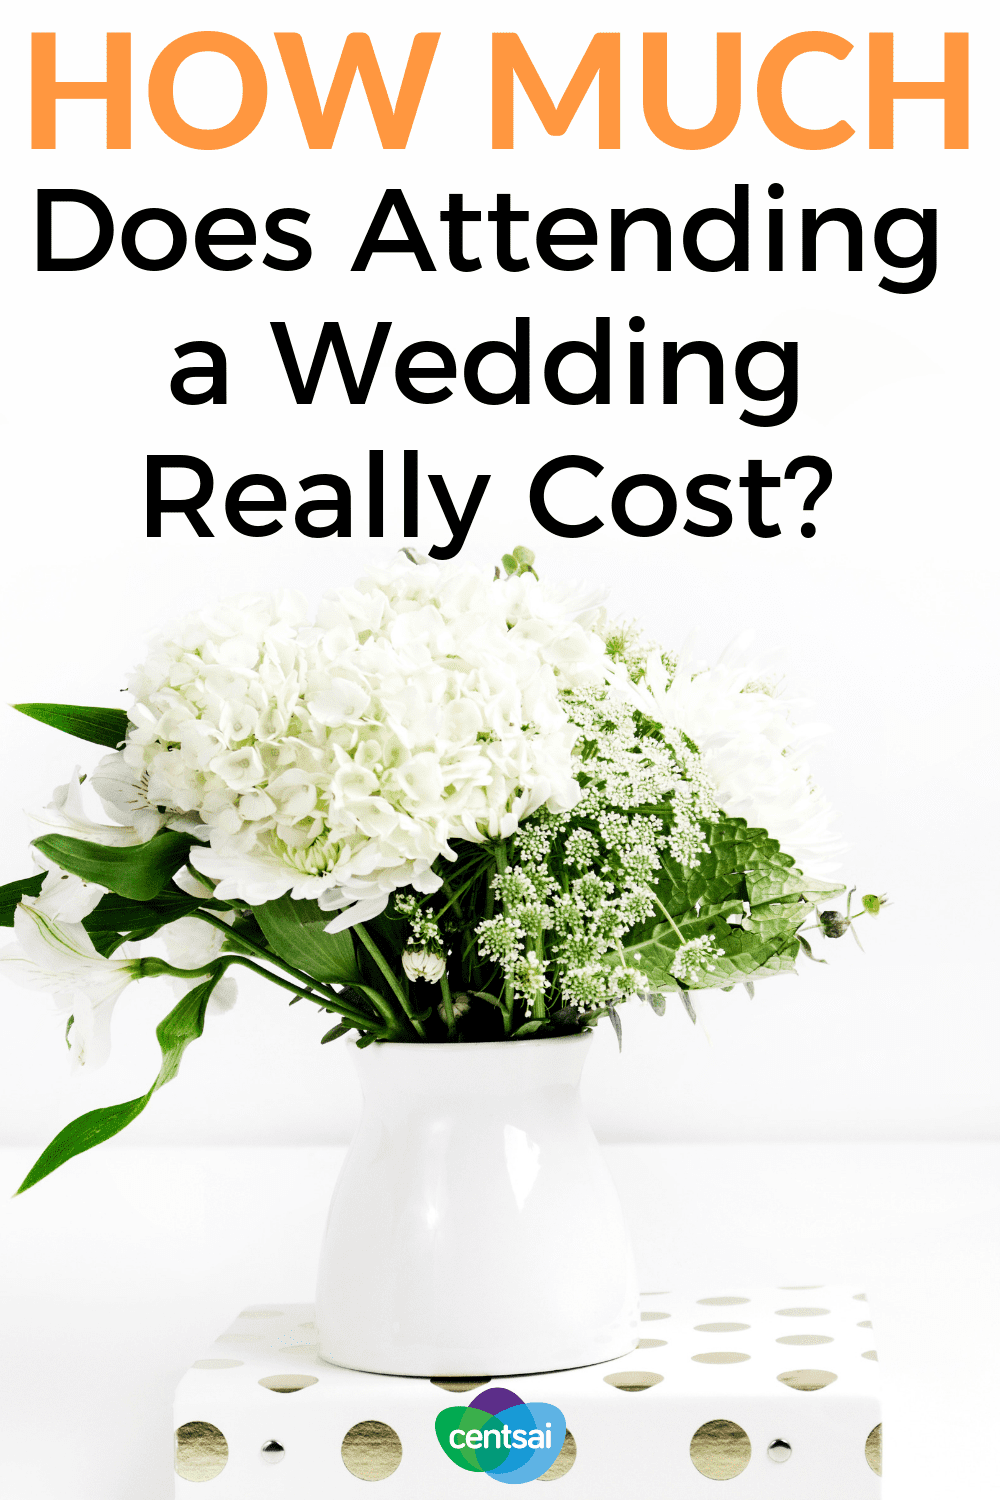 How Much Does Attending a Wedding Really Cost? We all know that having a wedding can be crazy expensive. But what about attending a wedding? Learn the costs before they drain your wallet. #weddingcost #wedding #marriage #relationship